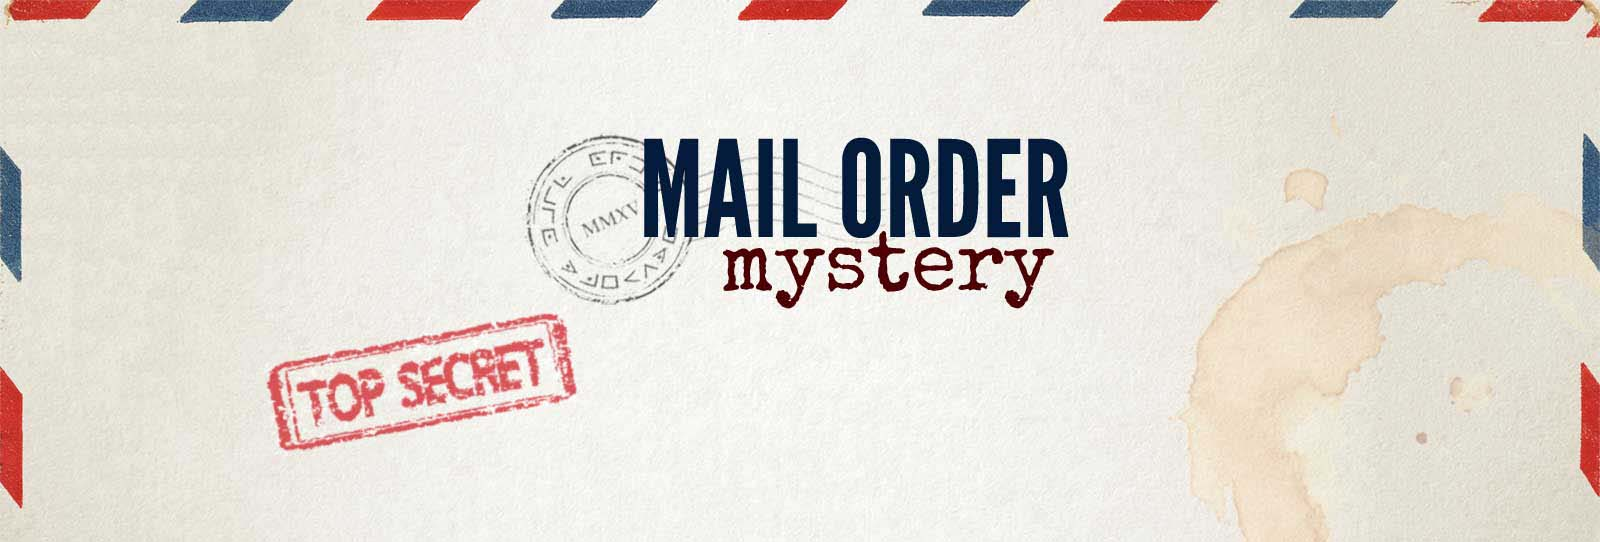 a cool gift for kids mysteries delivered by mail mail order mystery